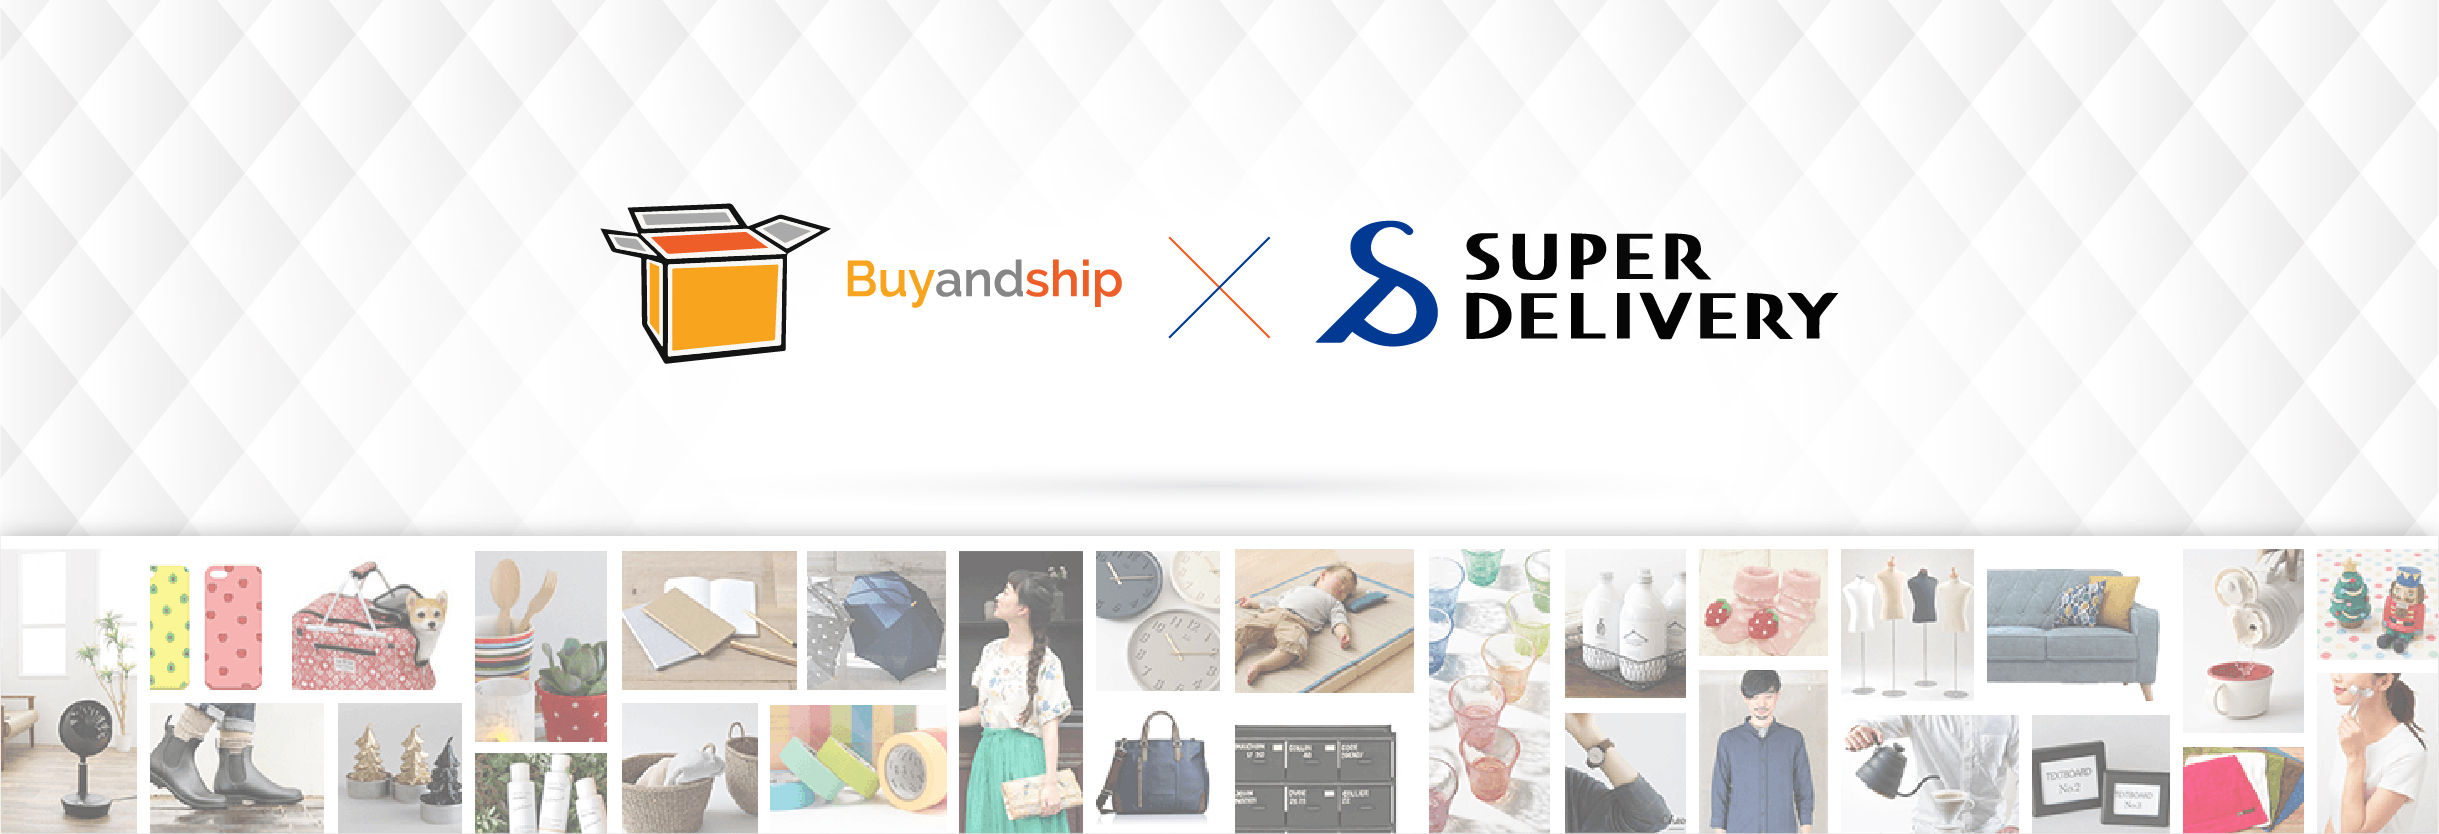 Buyandship X Delivery